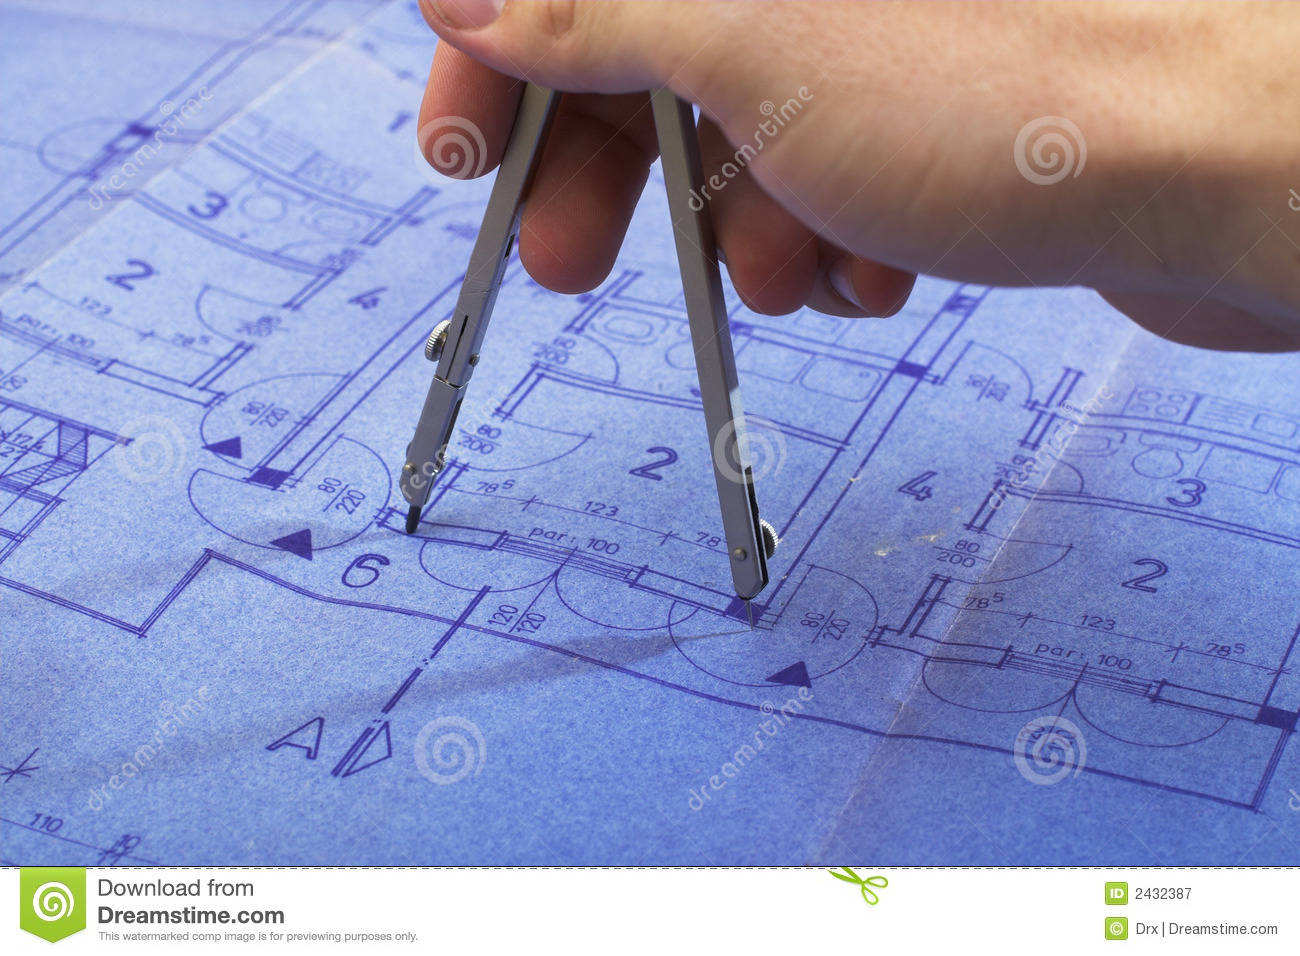 House architecture blueprint stock image image of planning download comp malvernweather Image collections